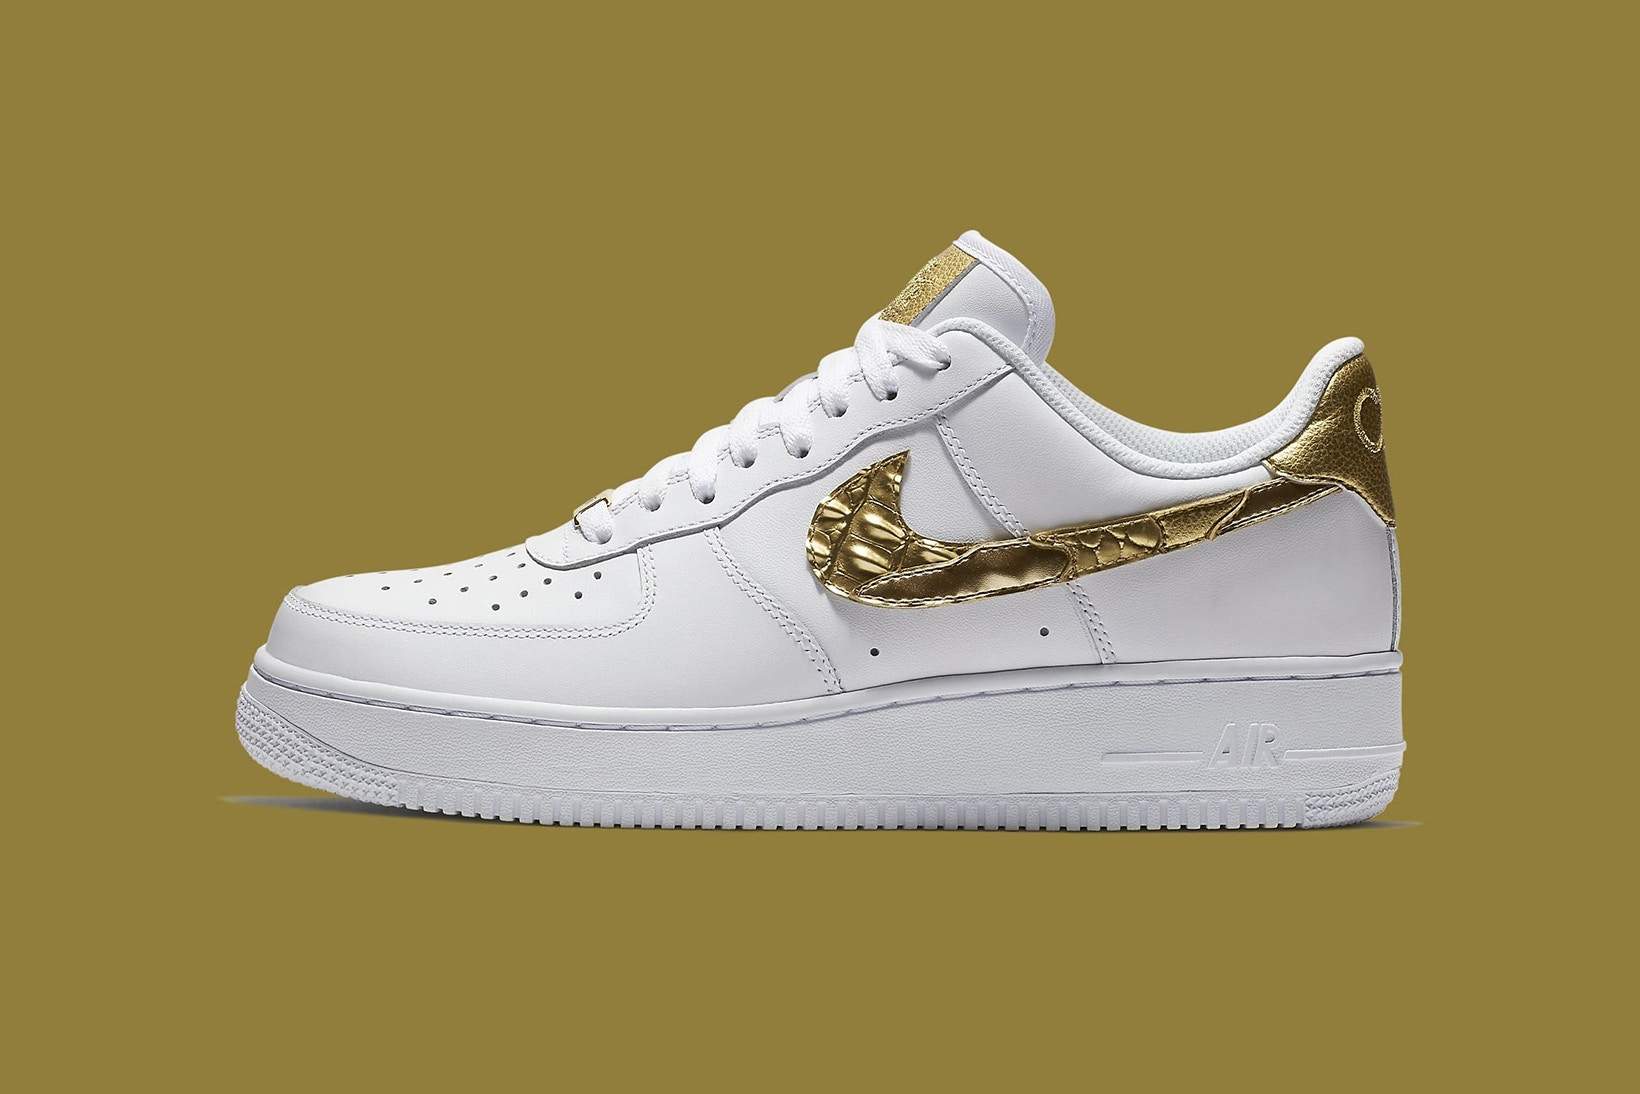 Nike Uncovers a Limited Edition Air Force 1 for Cristiano Ronaldo